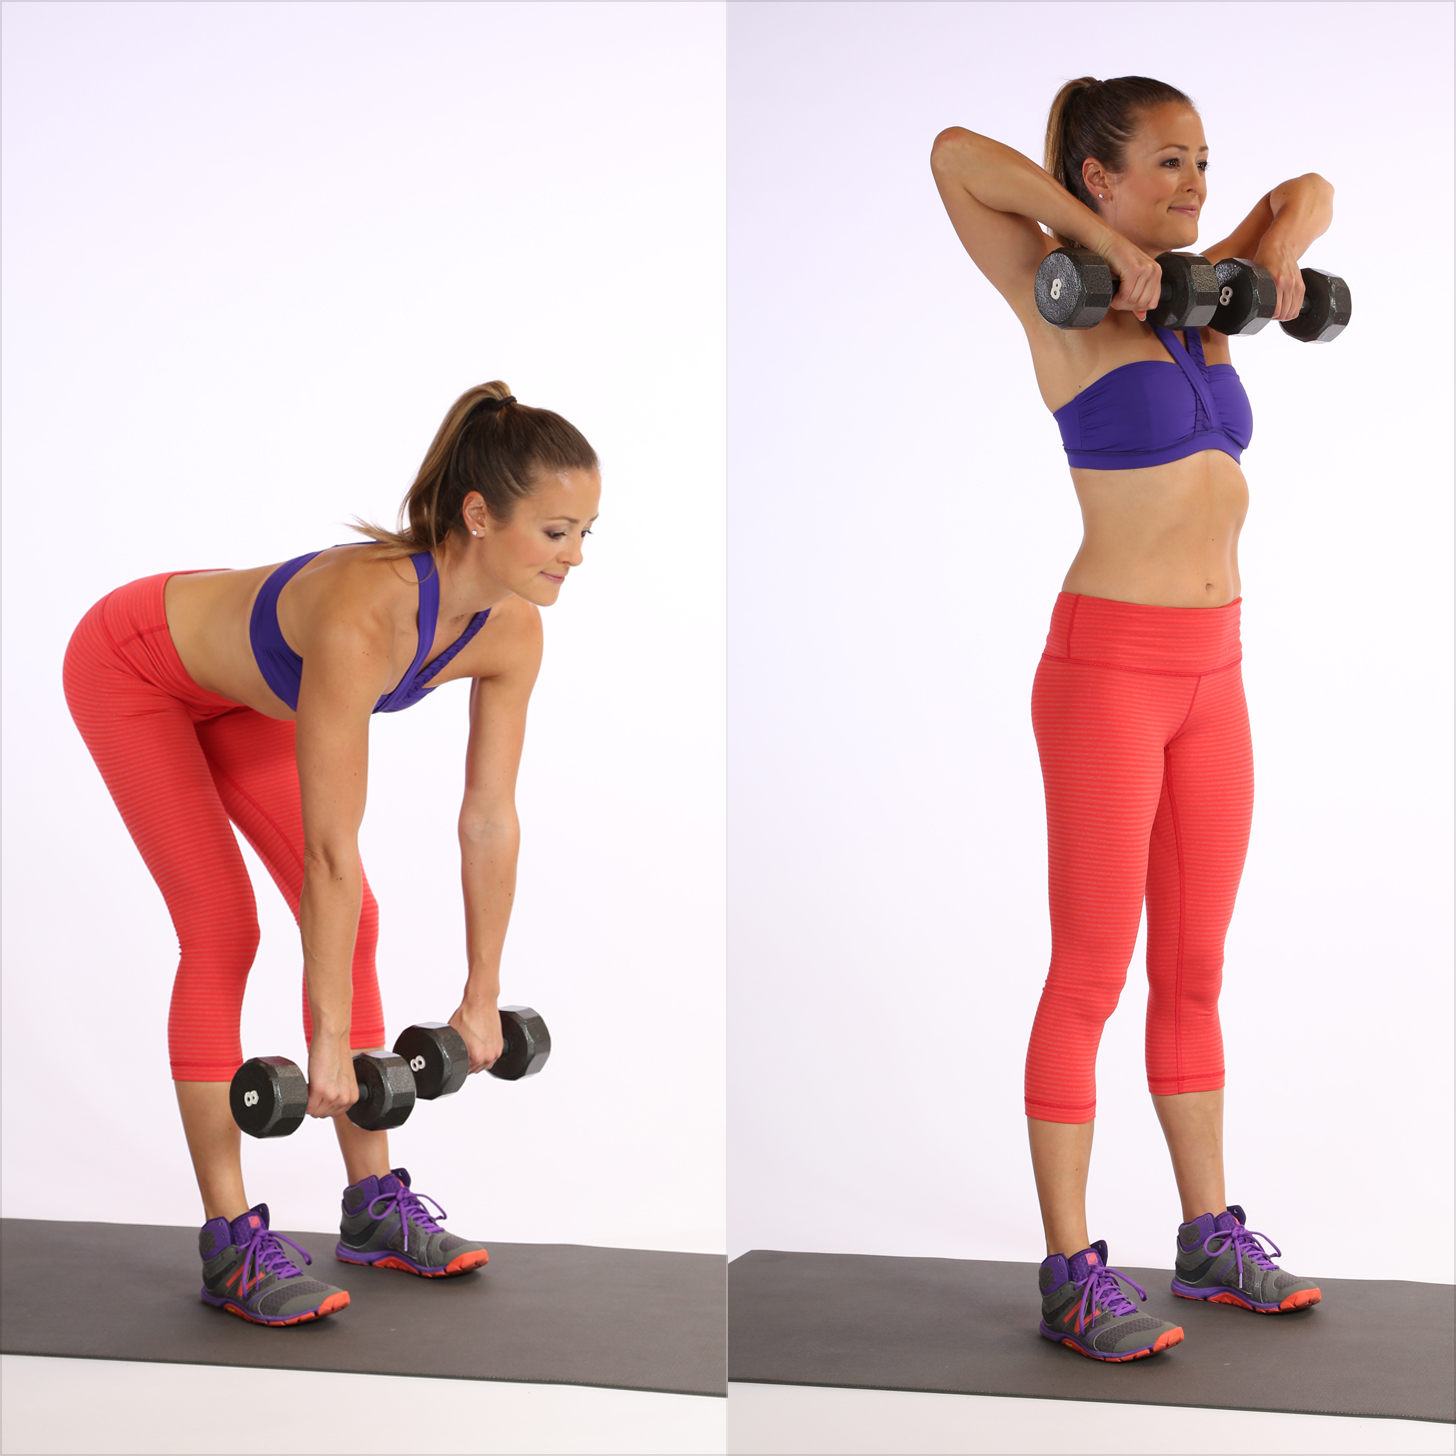 Circuit Three: Deadlift With Front Row